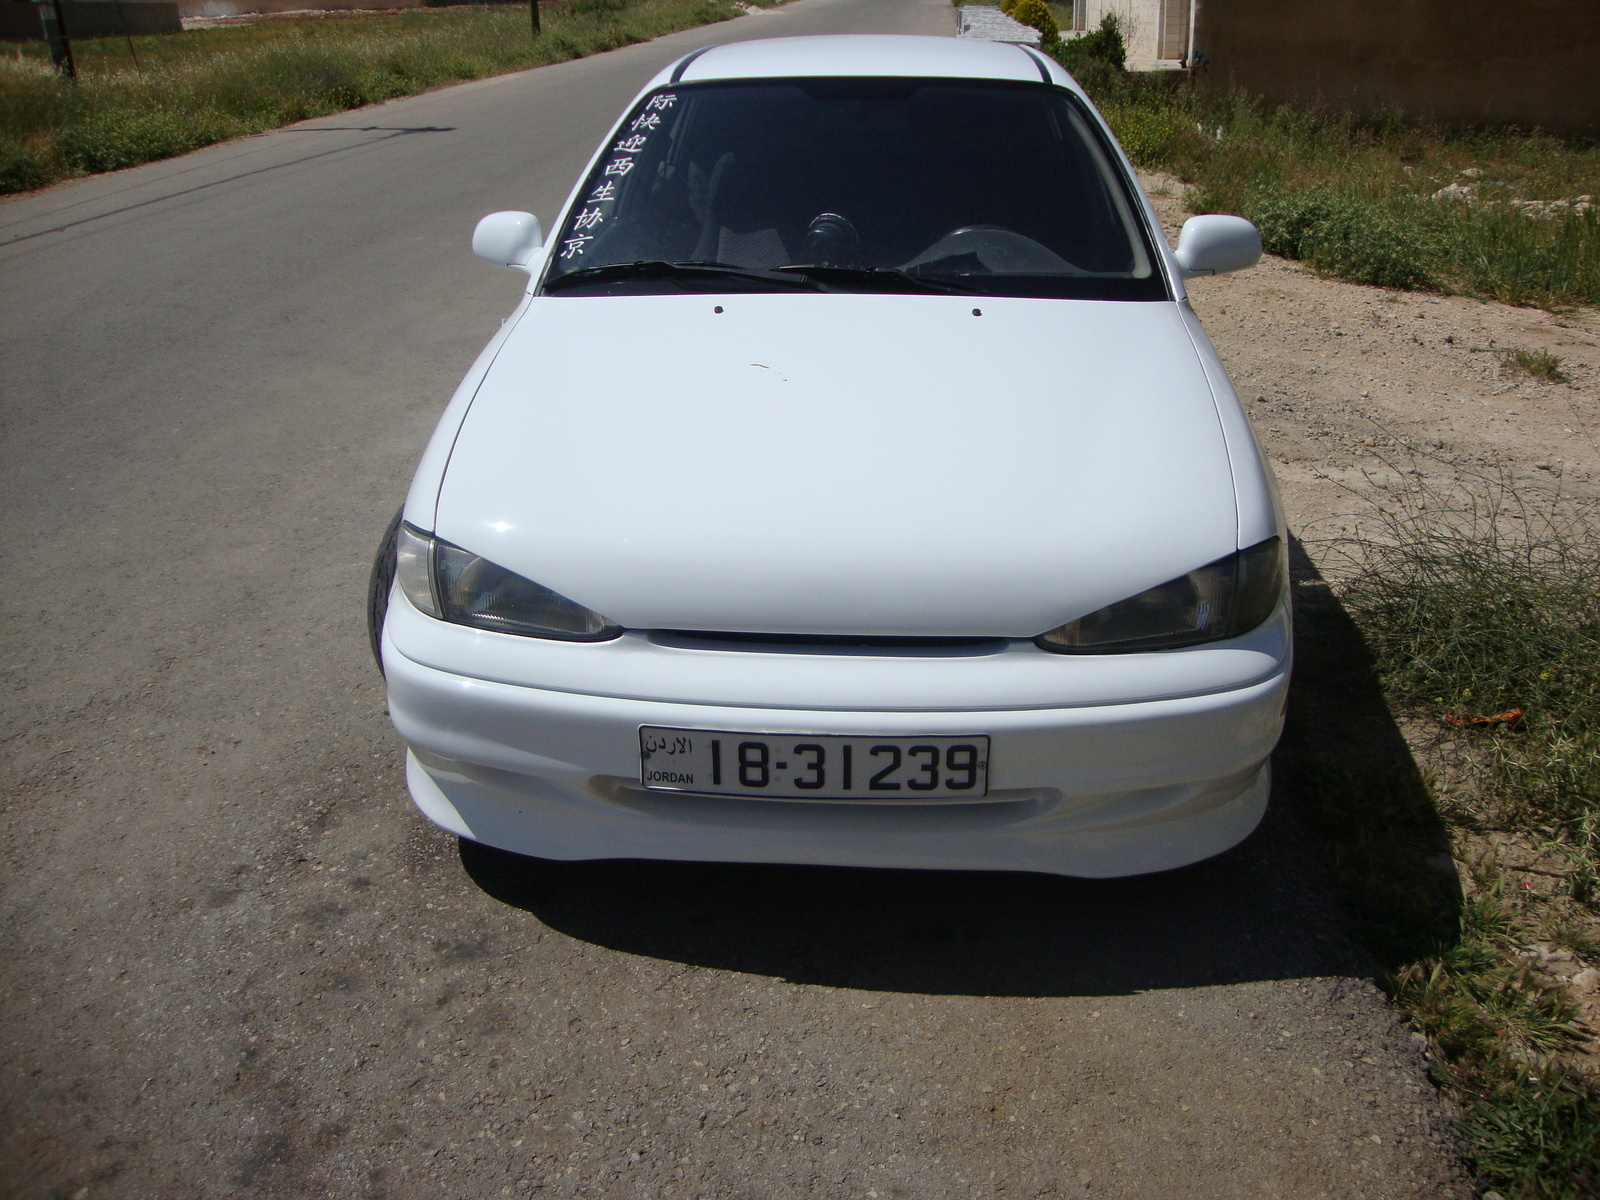 1997 Hyundai Accent - Overview